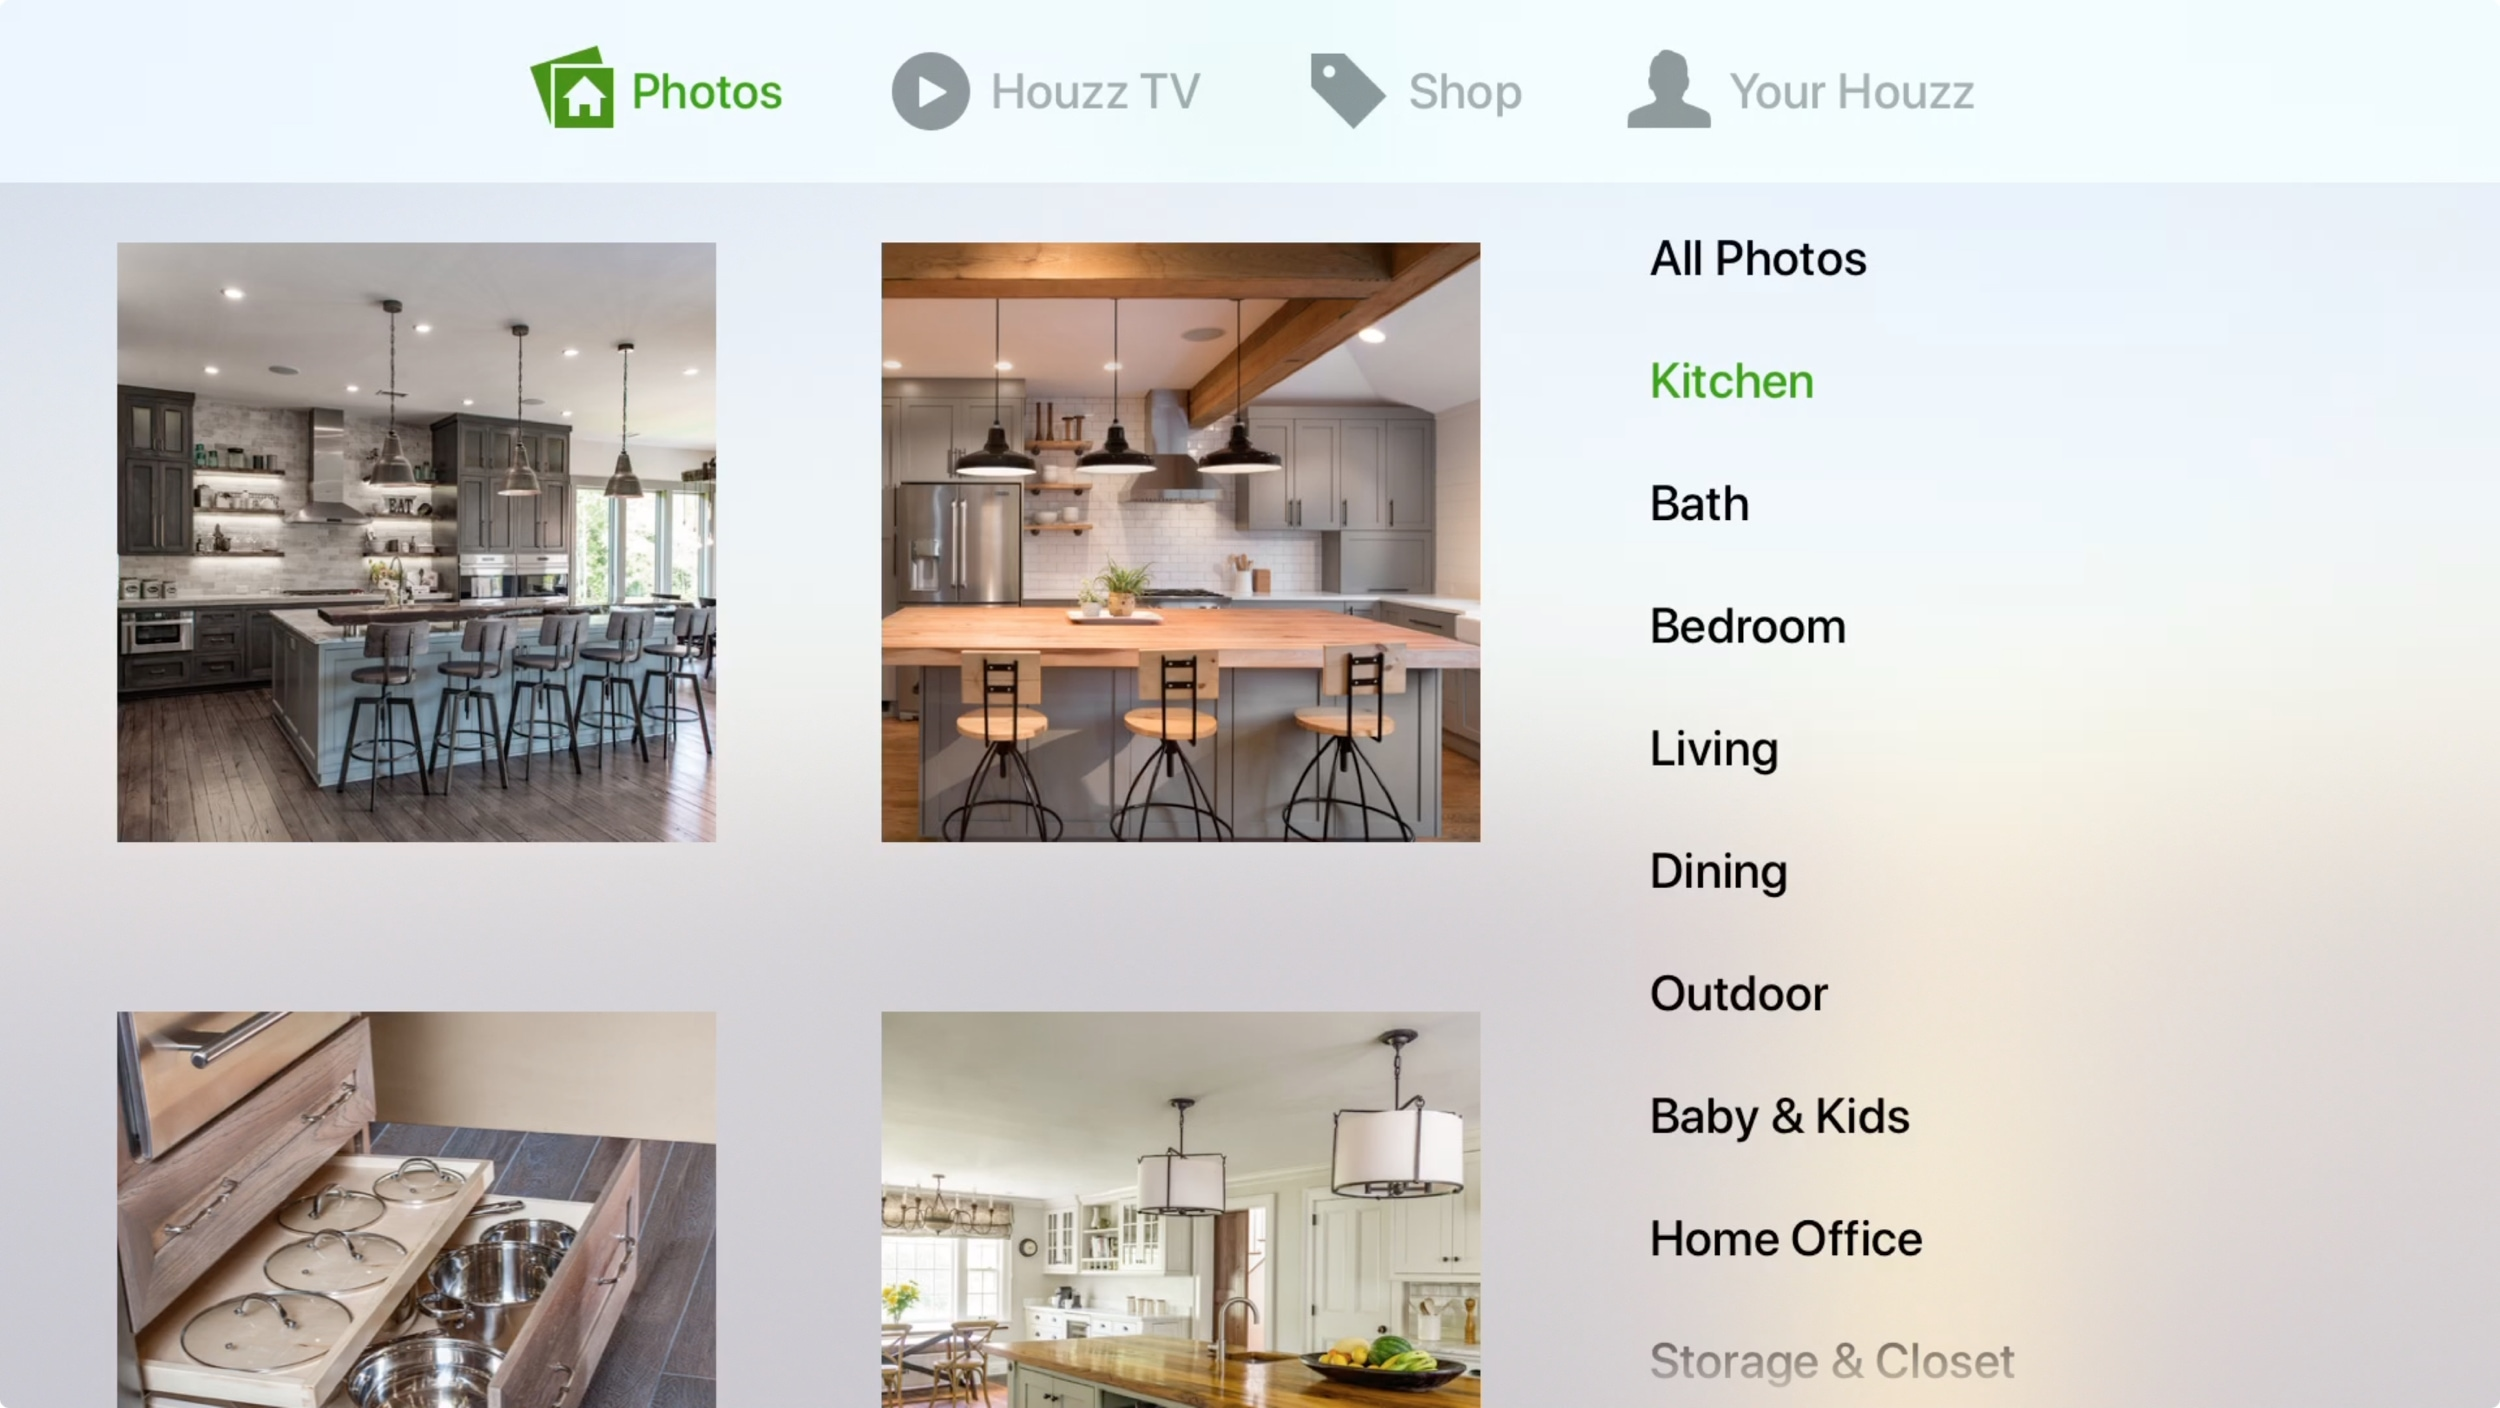 Houzz on Apple TV